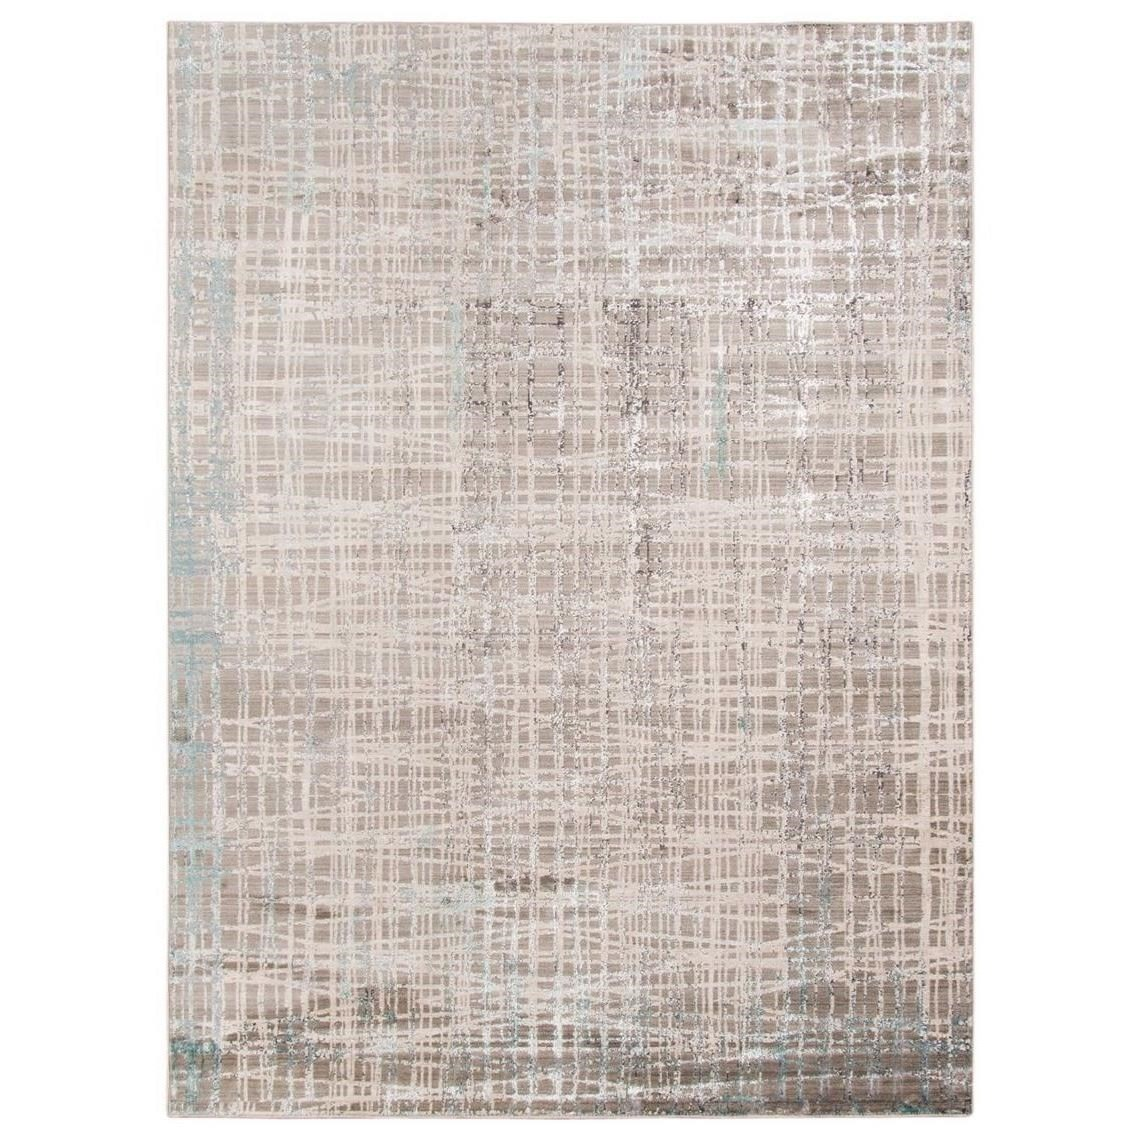 Rugs Cameran Blue 7 X 10 Rug by Uttermost at Adcock Furniture